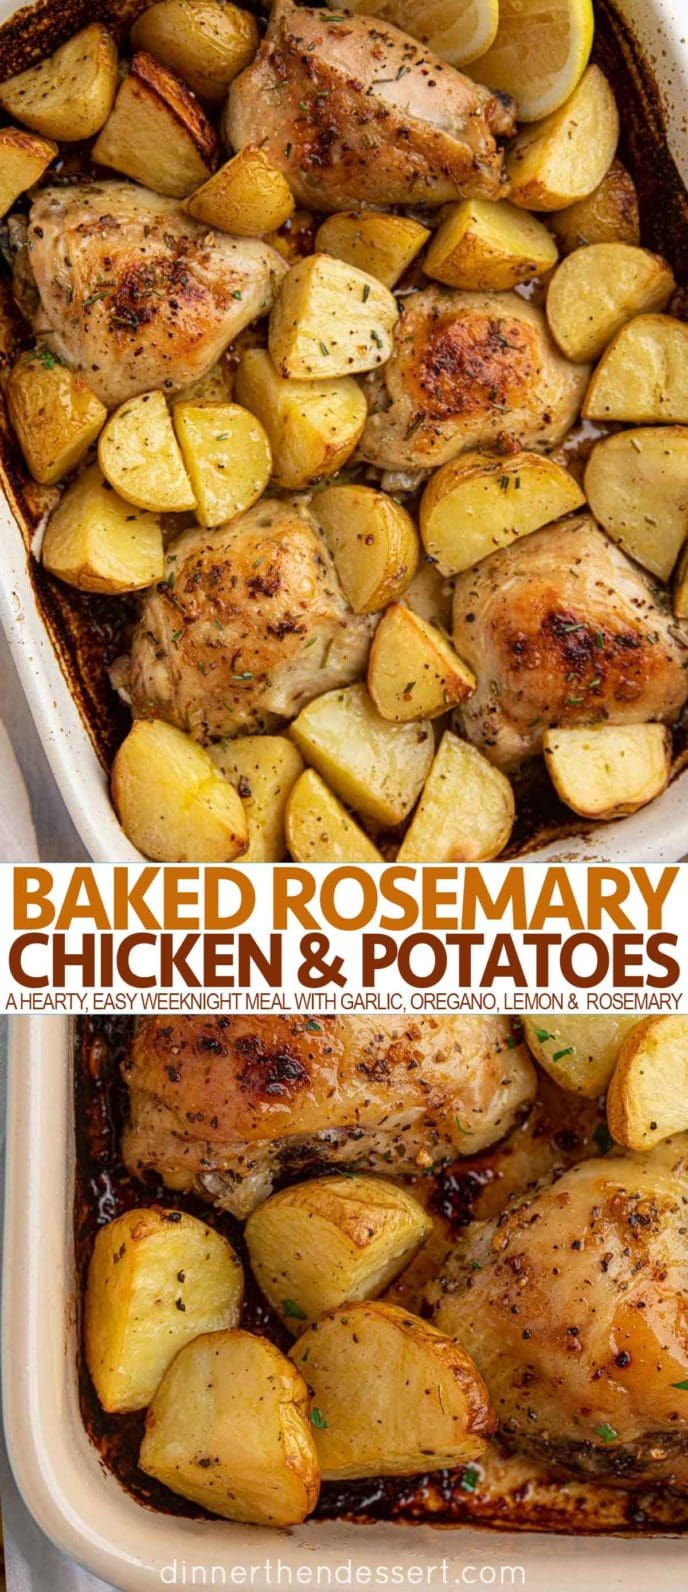 Baked Rosemary Chicken & Potatoes